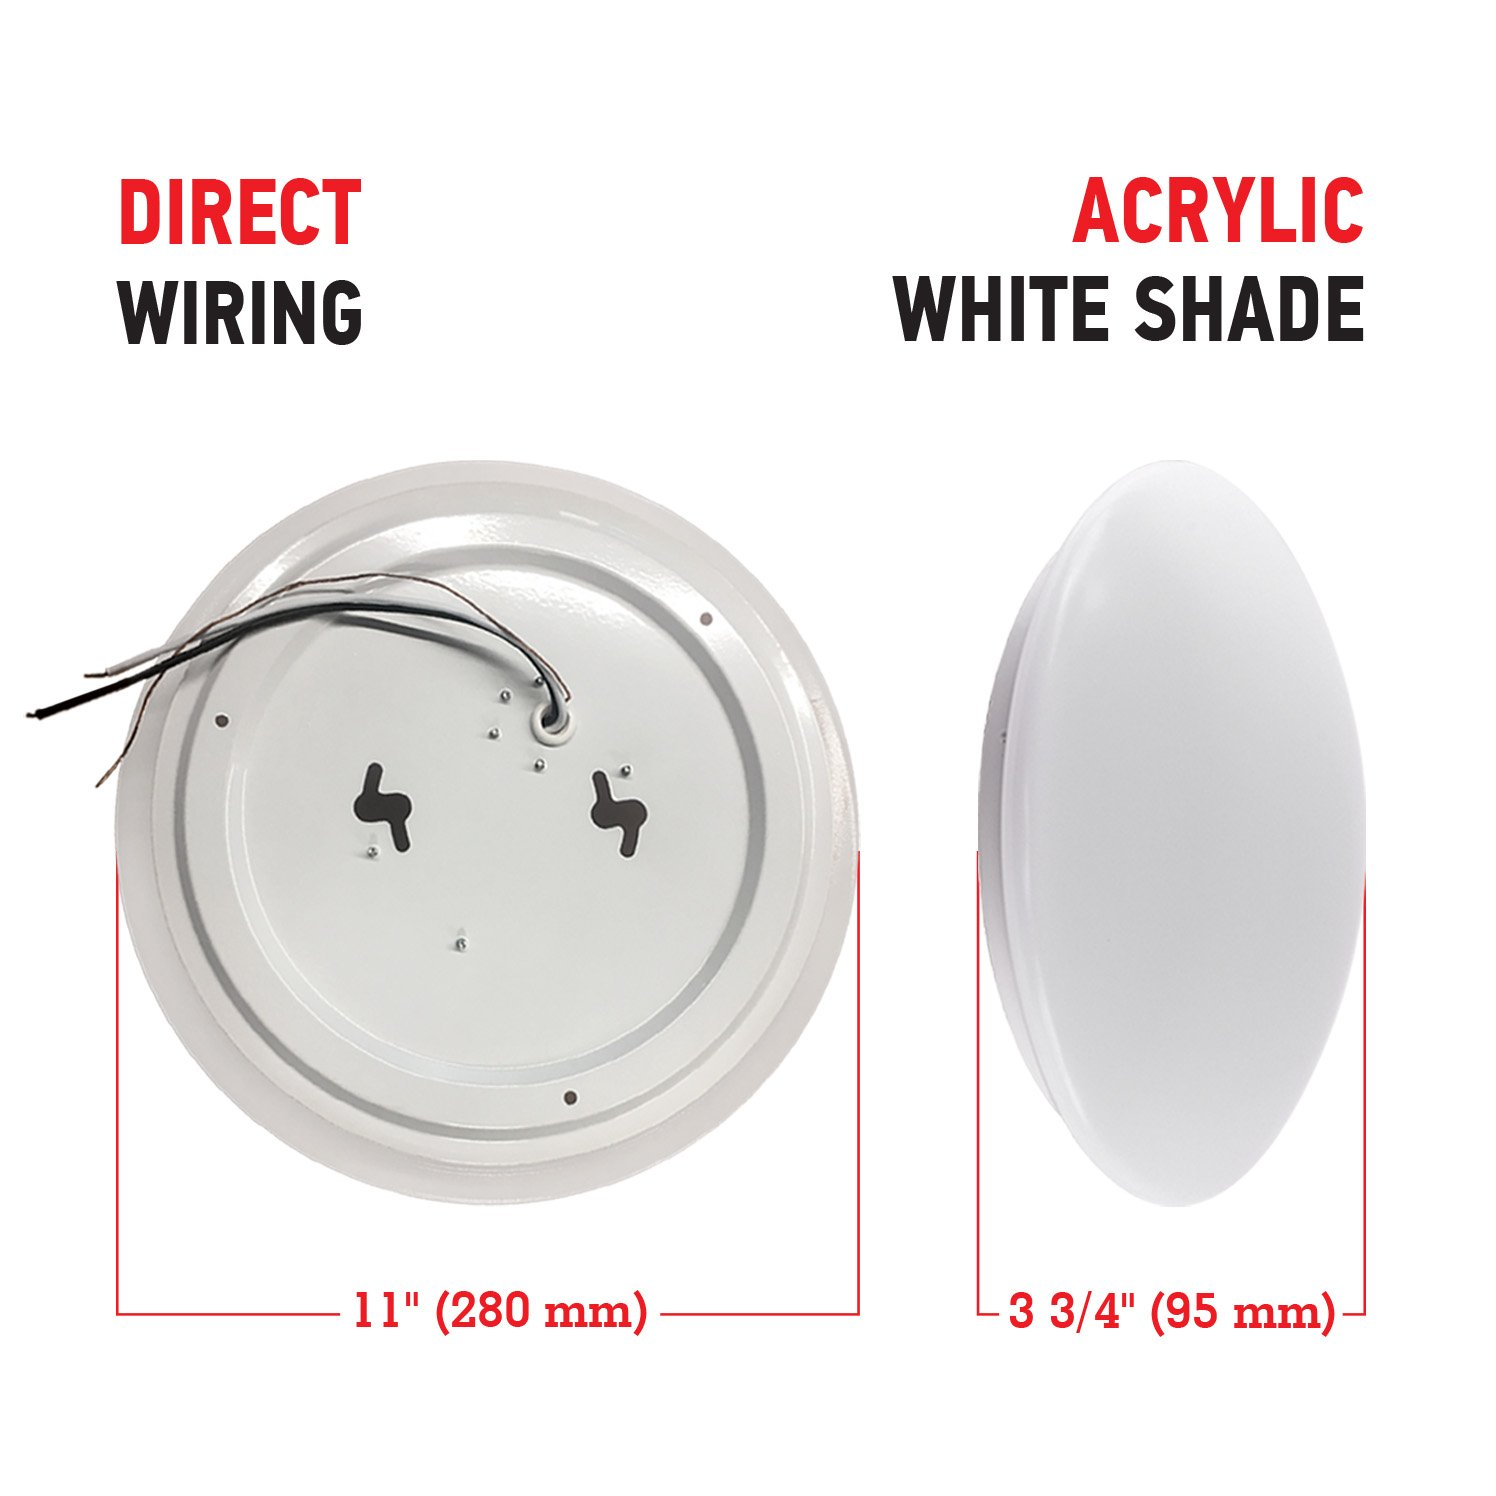 OSTWIN 11-inch LED Flush mount Ceiling Light MS Series 20W (100 Watt equivalent), Dimmable, 5000K (Daylight), 1864 Lumens, White Finish with Acrylic shade, ETL and ENERGY STAR listed by OSTWIN (Image #5)